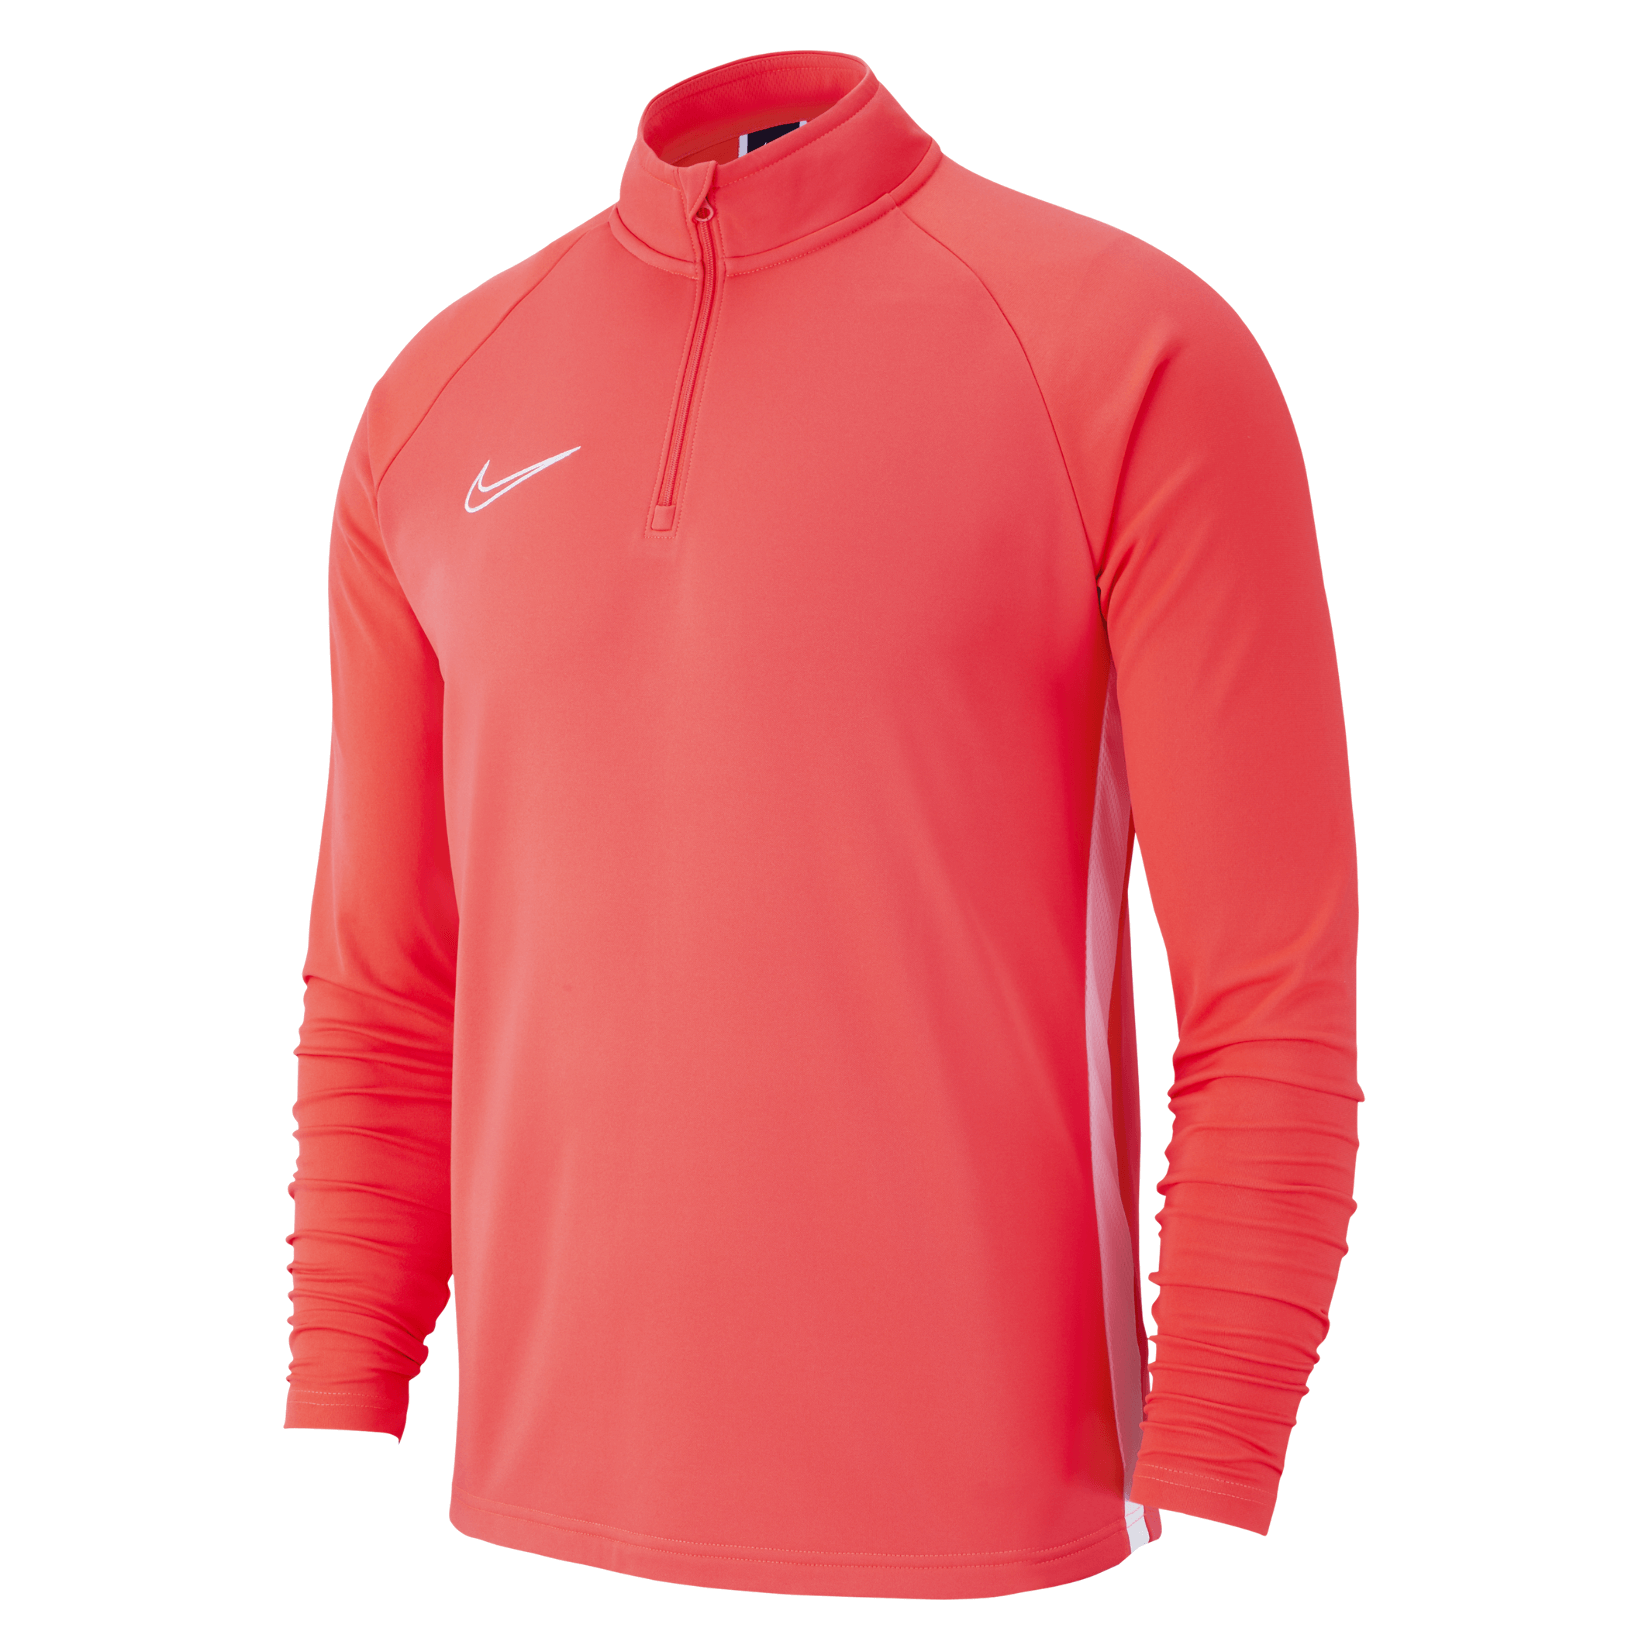 Nike Dri-fit Academy 19 Midlayer Bright Crimson-White-White